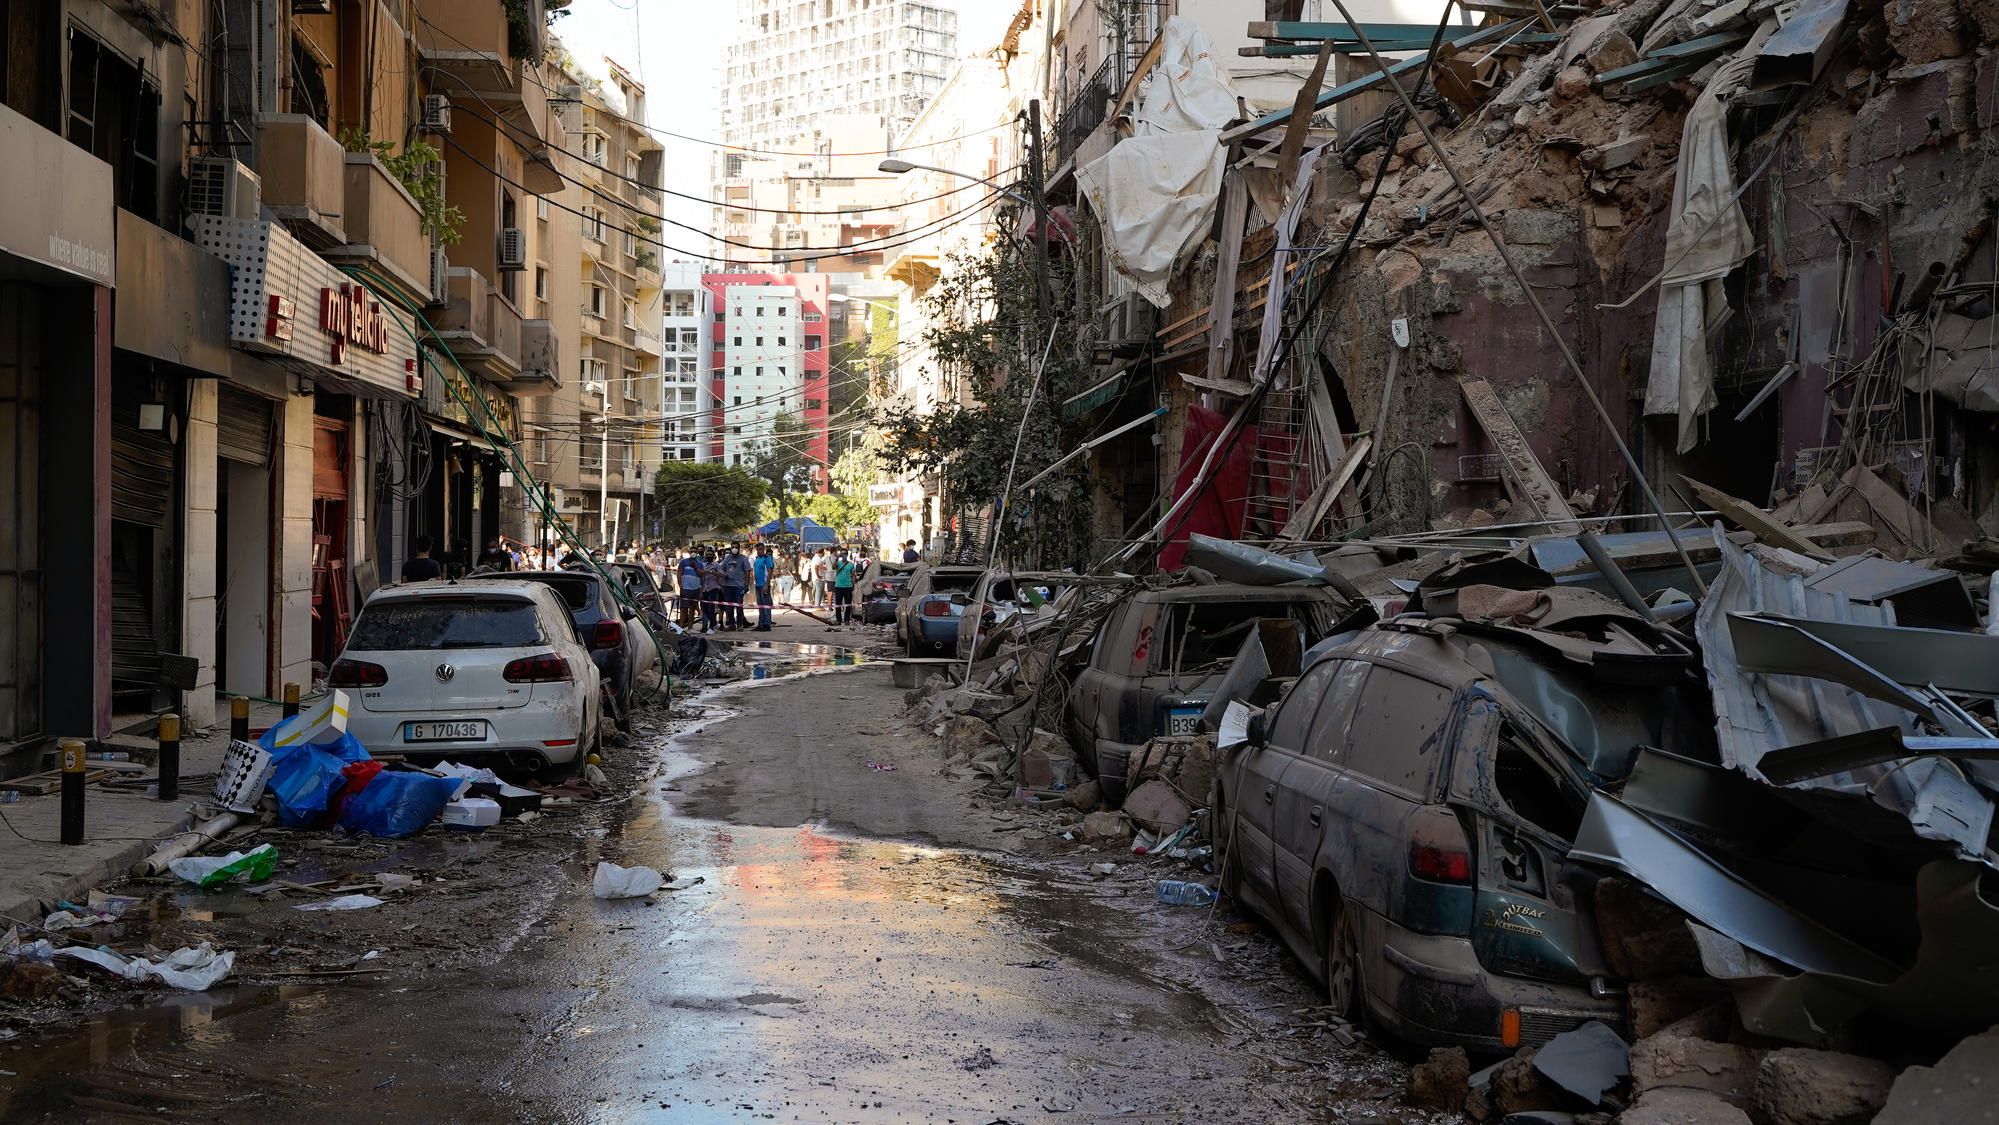 Beirut Explosion August 4th